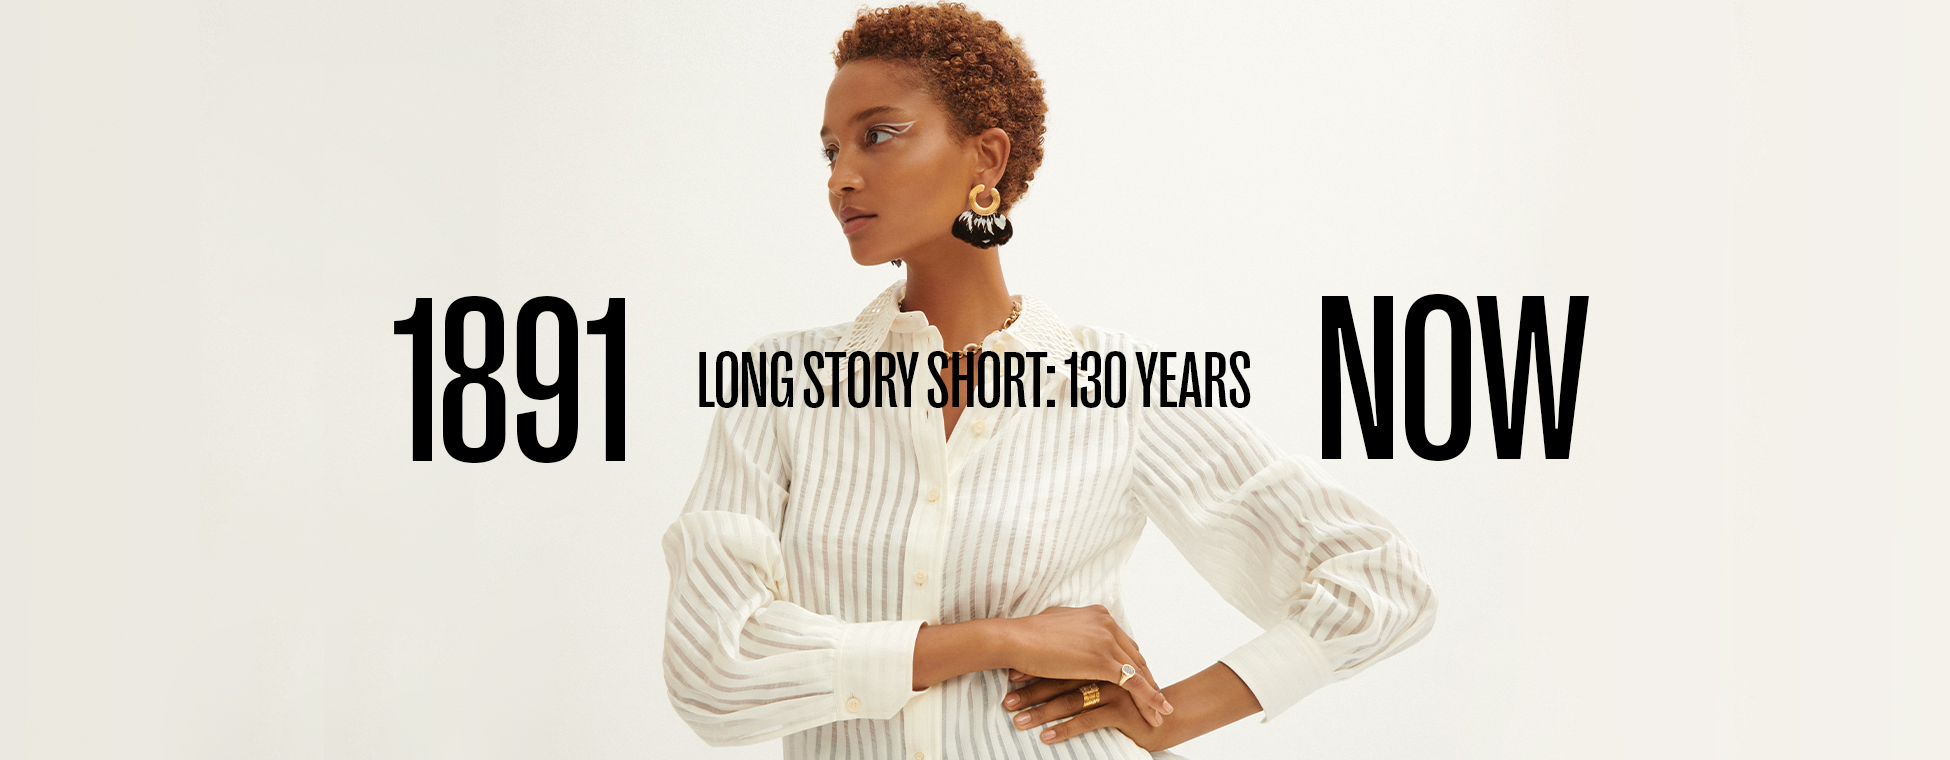 1891 - Now : Long story short: 130 years